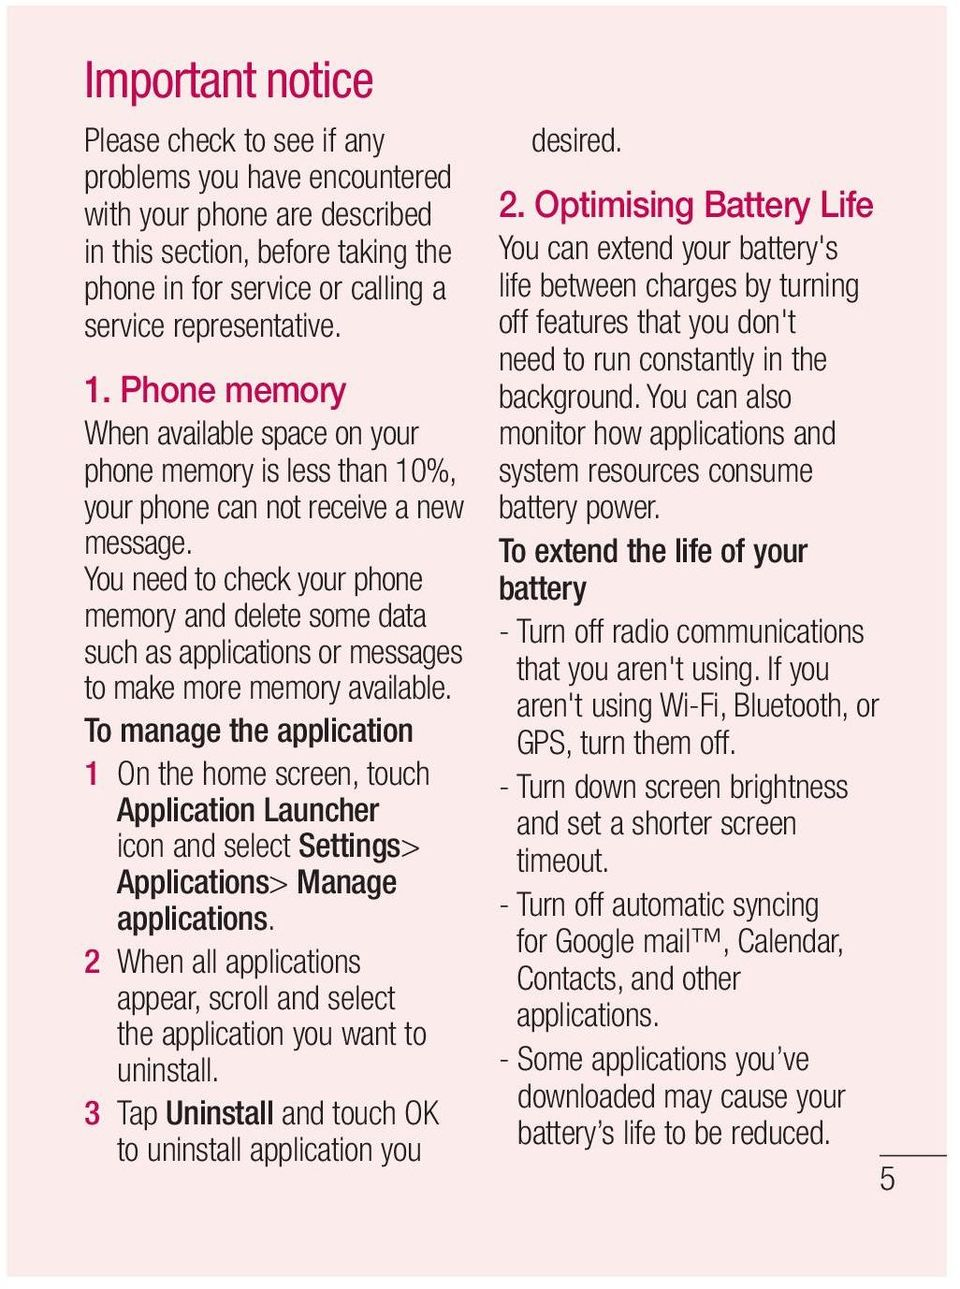 You need to check your phone memory and delete some data such as applications or messages to make more memory available.